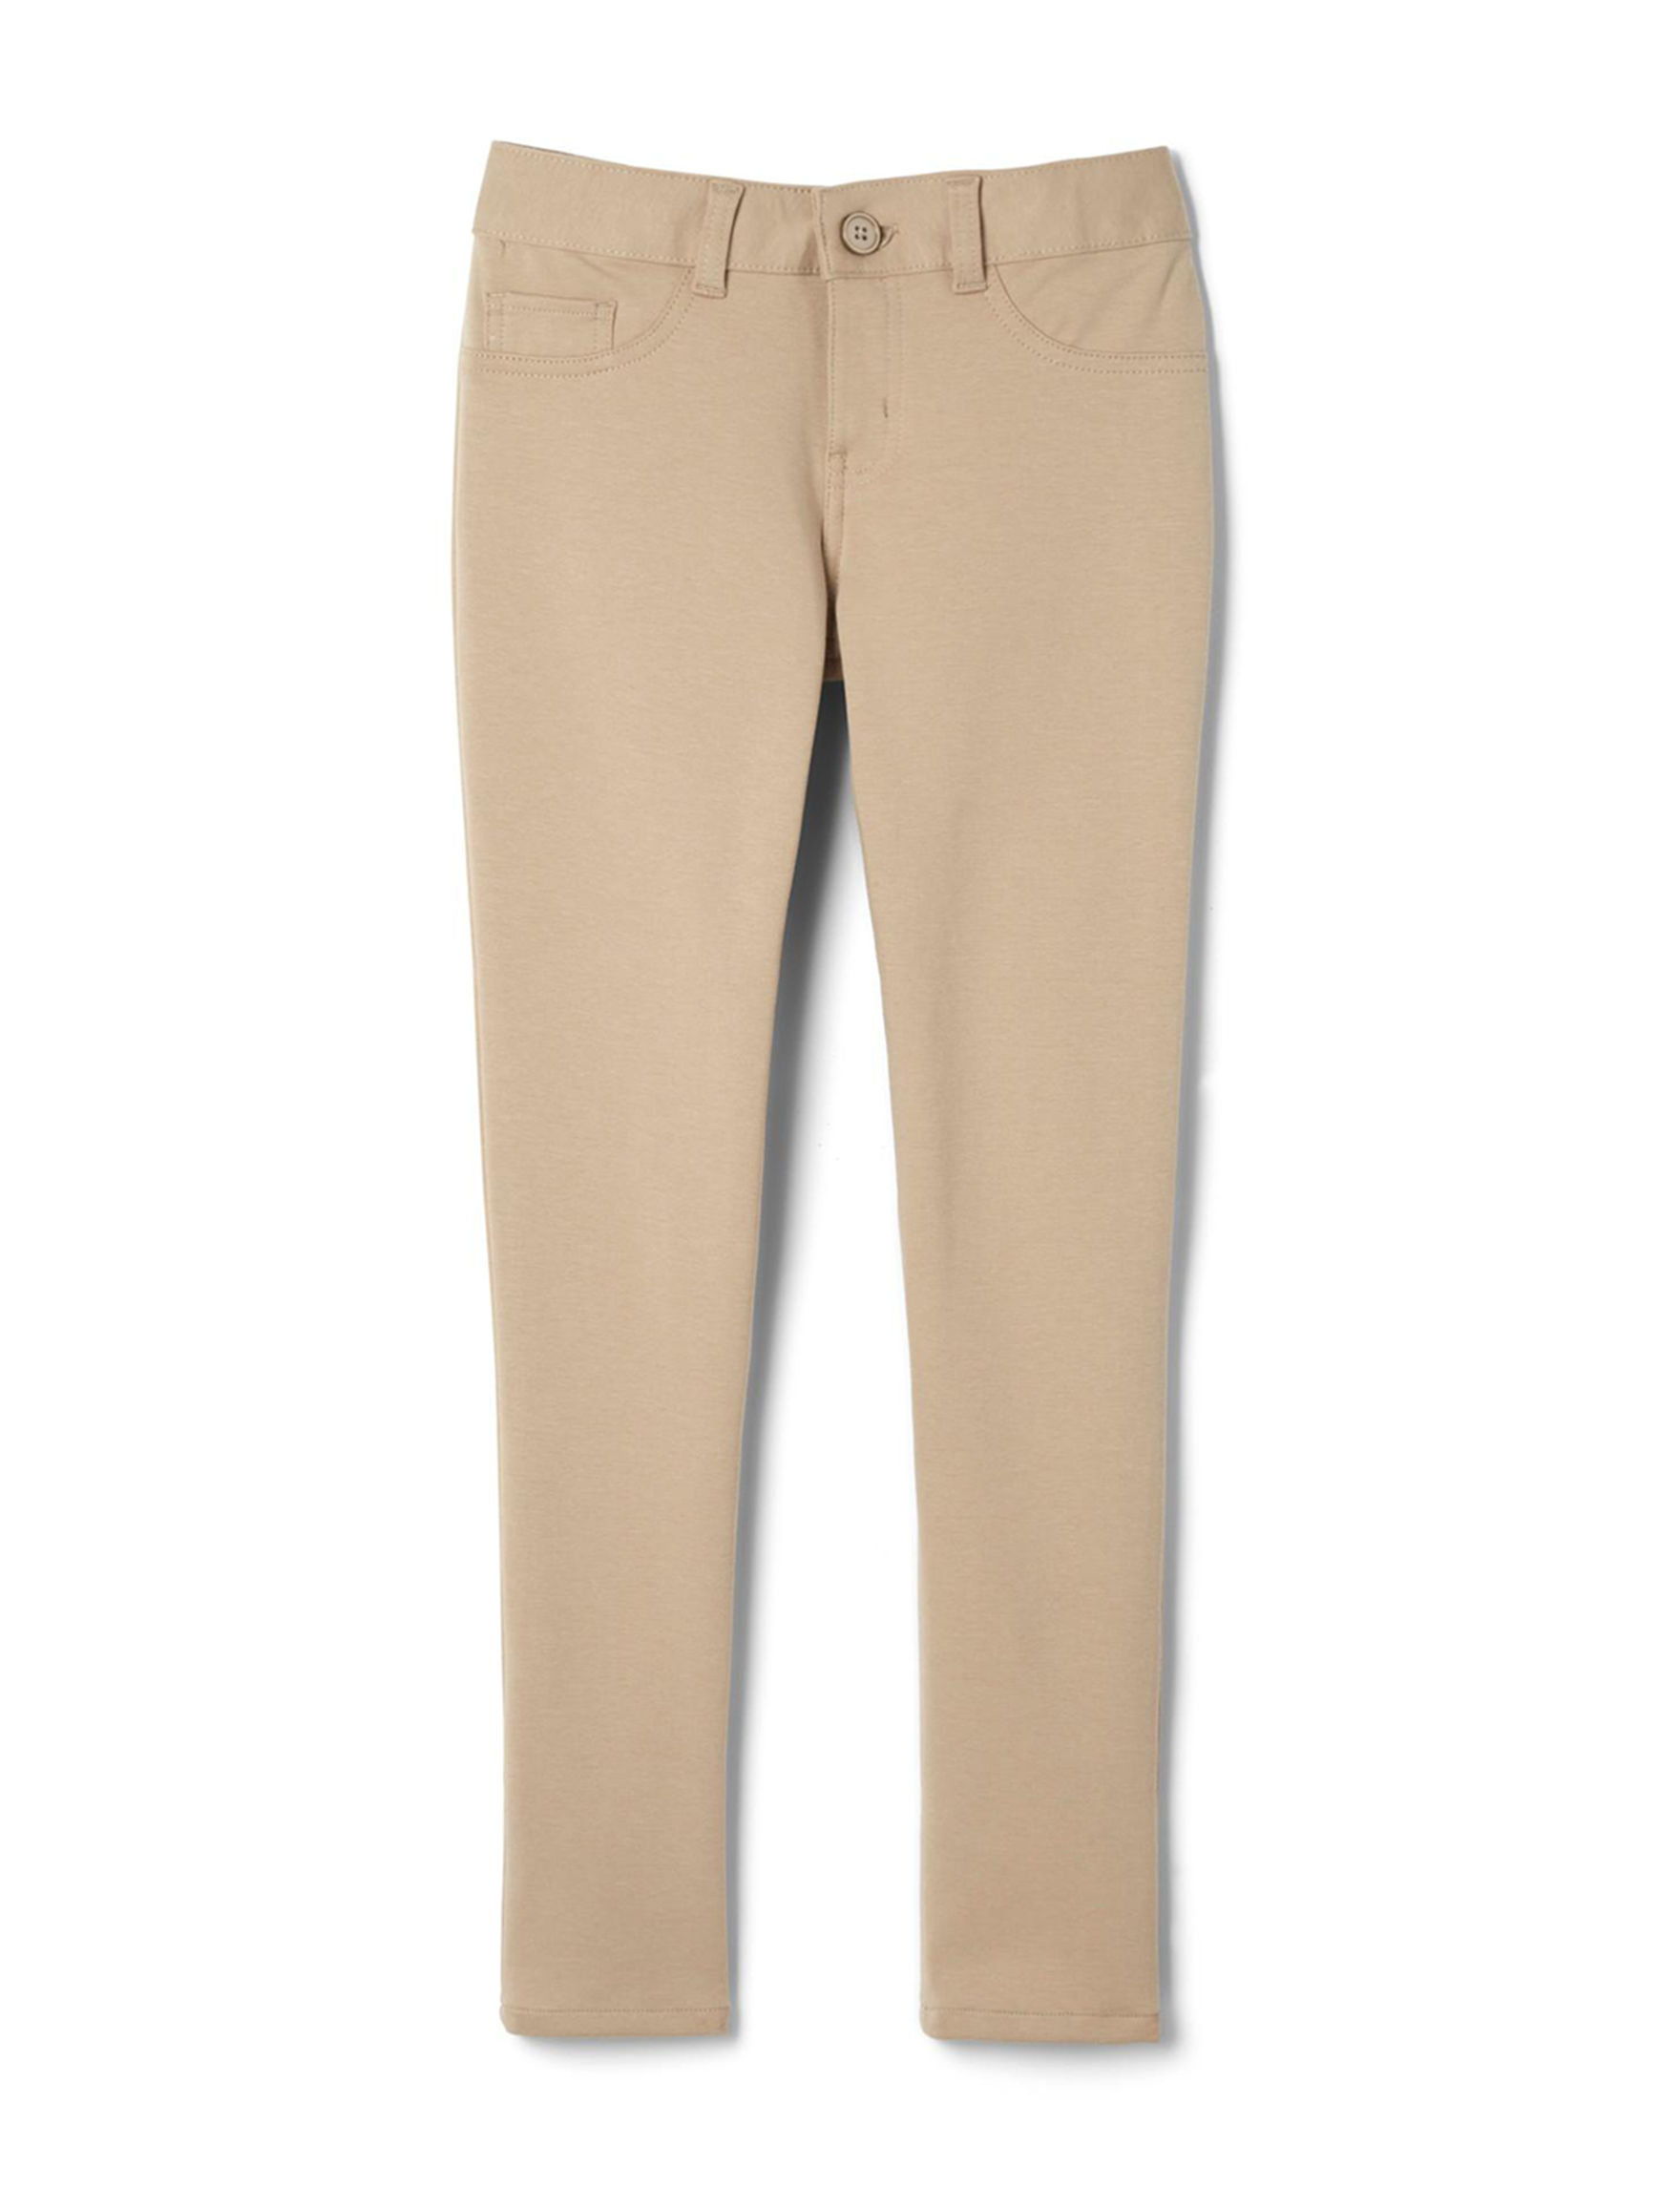 French Toast Khaki Skinny